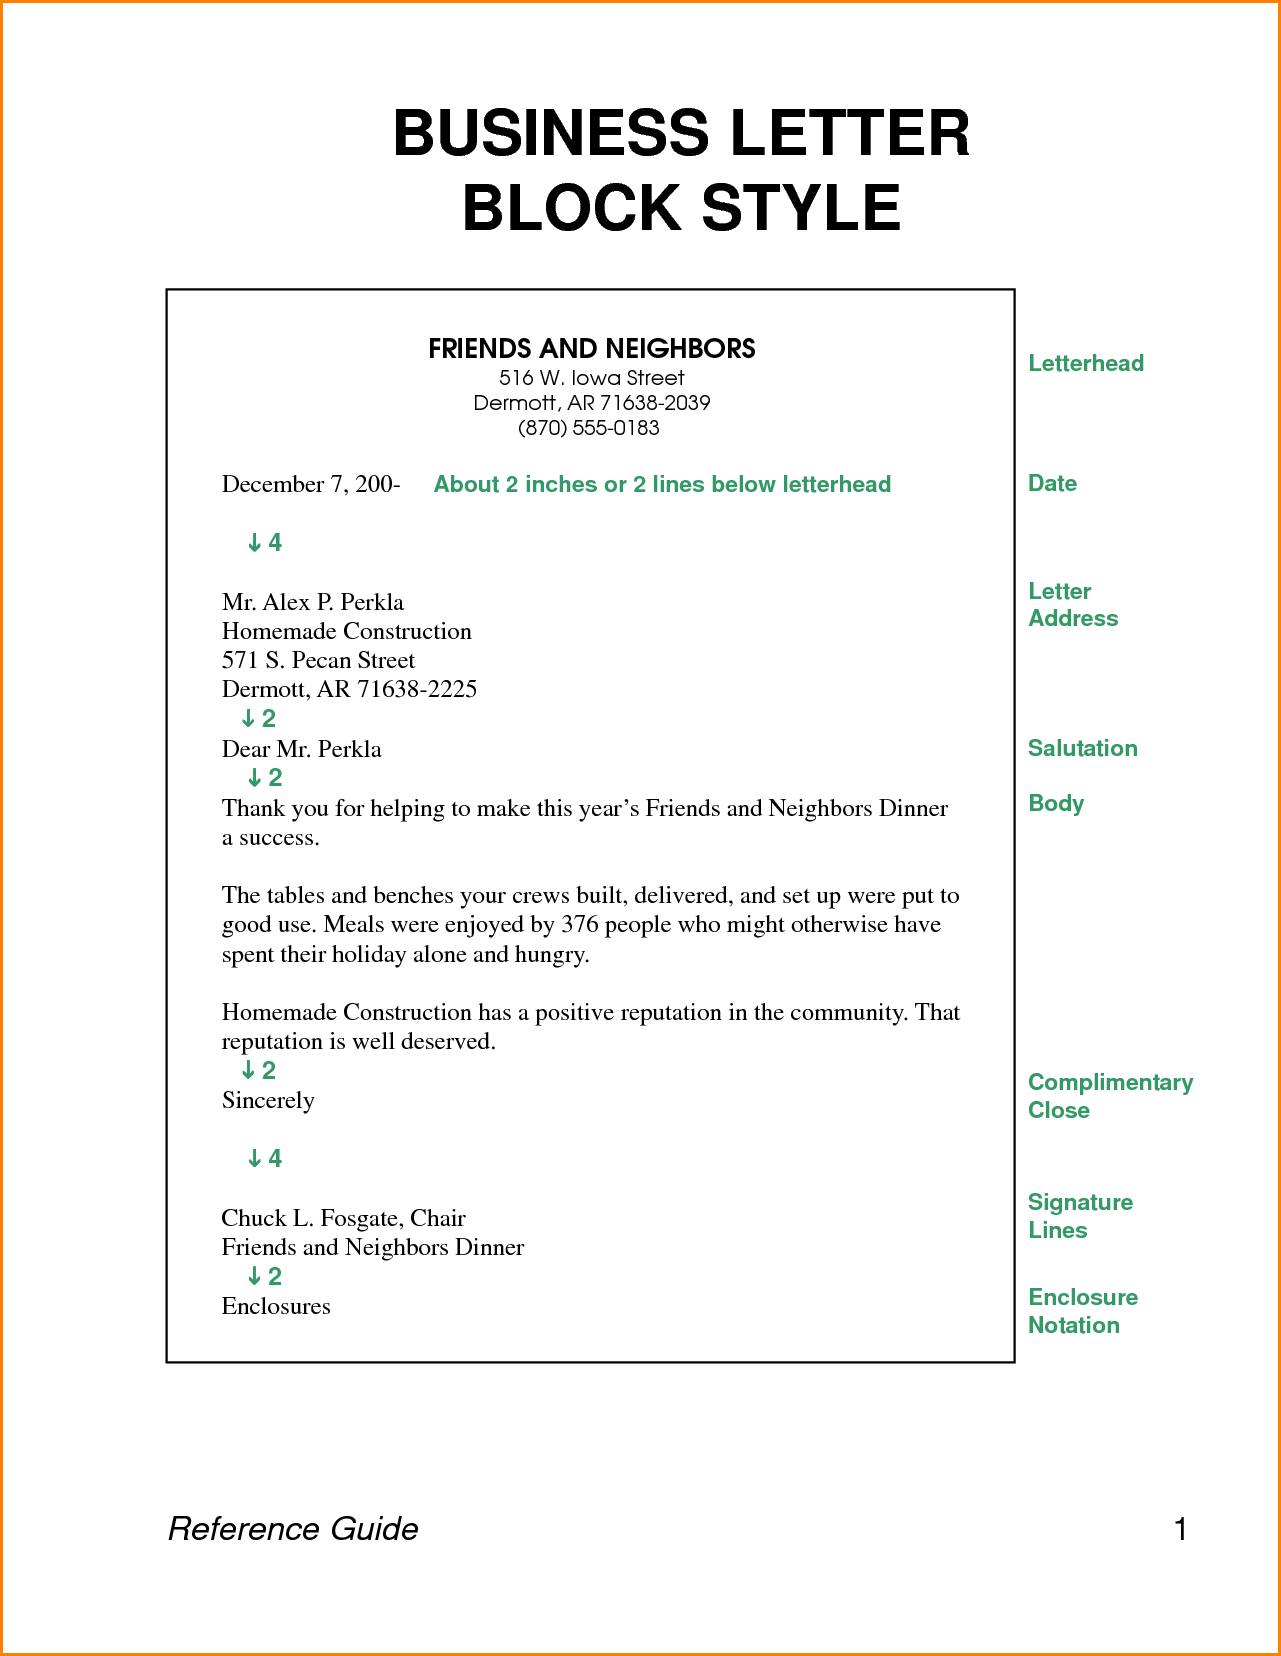 Business letter block style letters format download free documents business letter block style letters format download free documents pdf word spiritdancerdesigns Choice Image